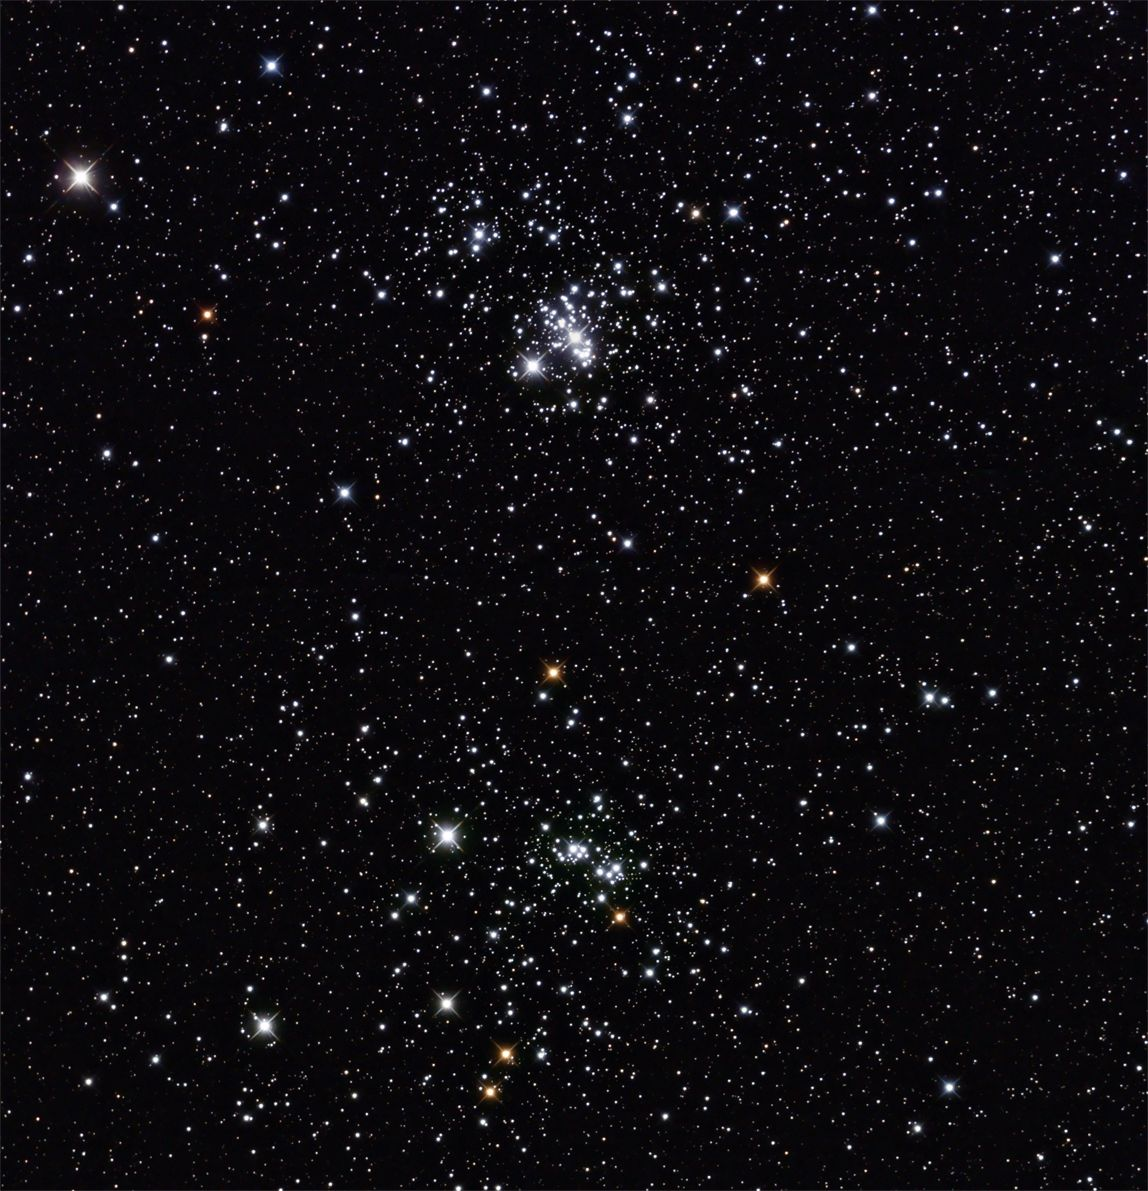 C14 - Double Cluster